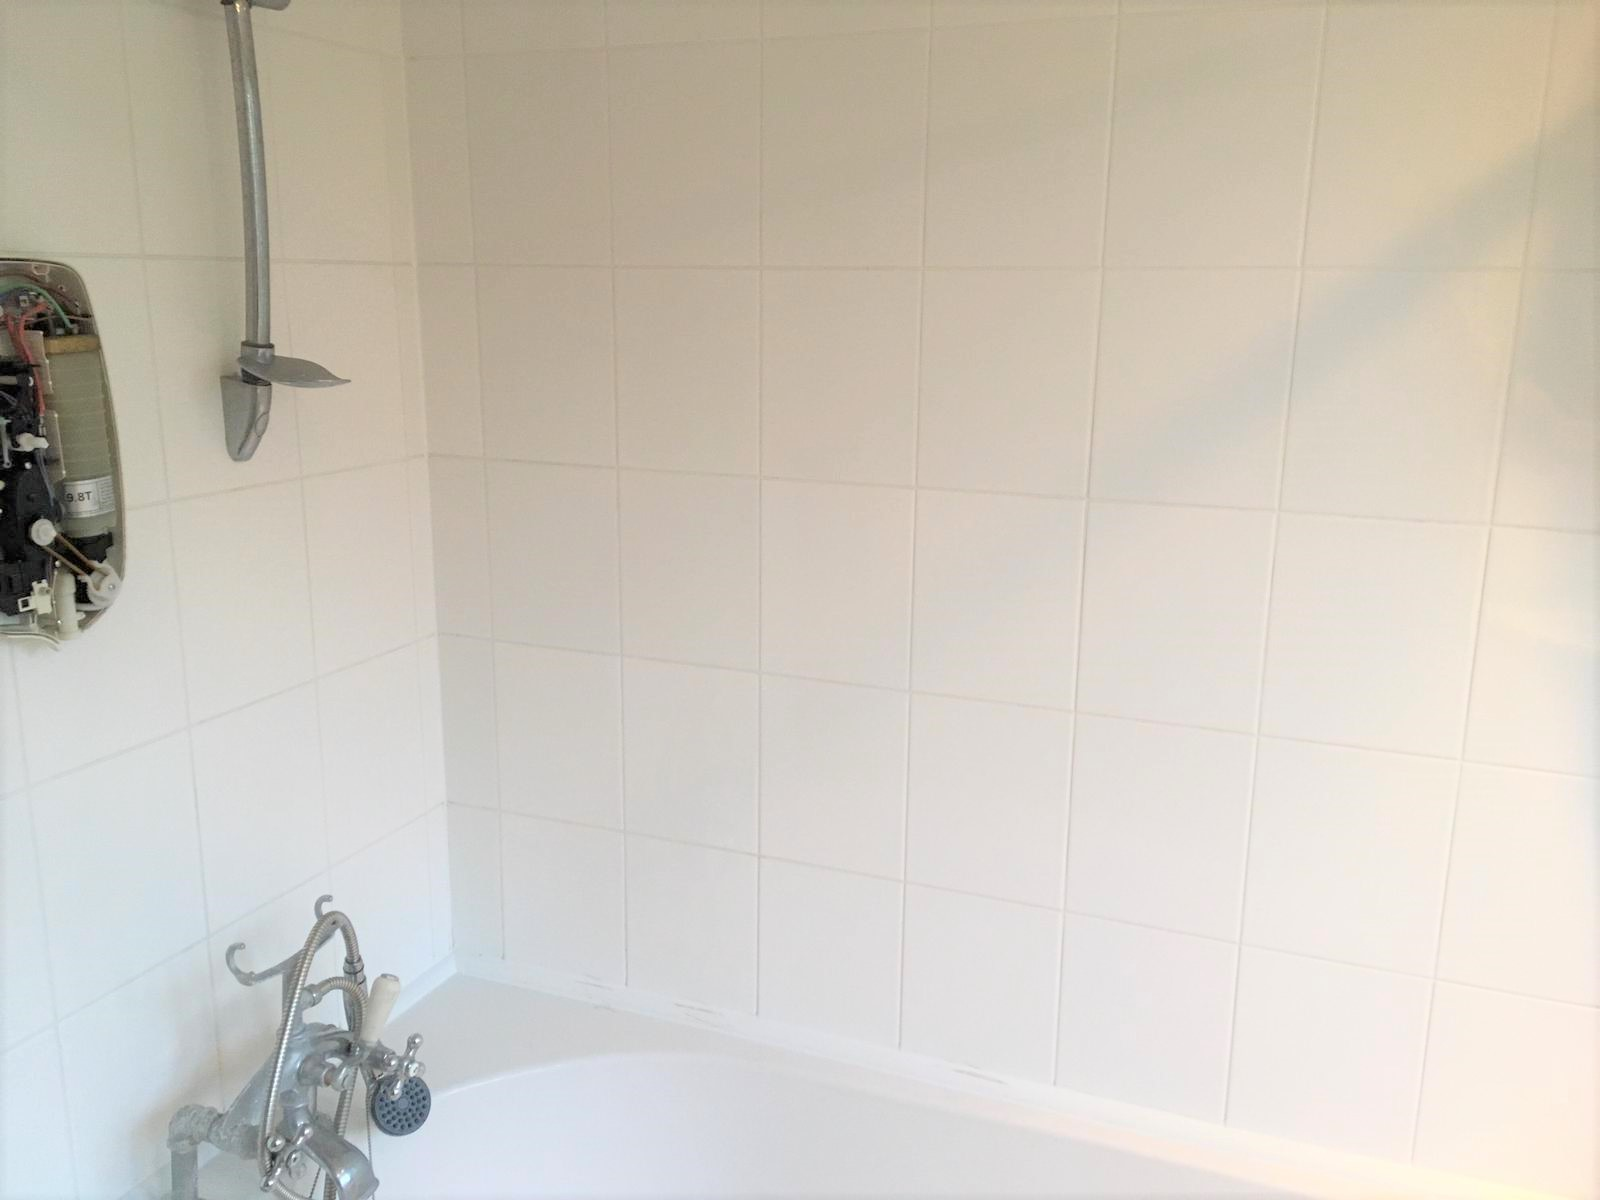 Ceramic Tiled Shower Bath Tiles After Cleaning Bow